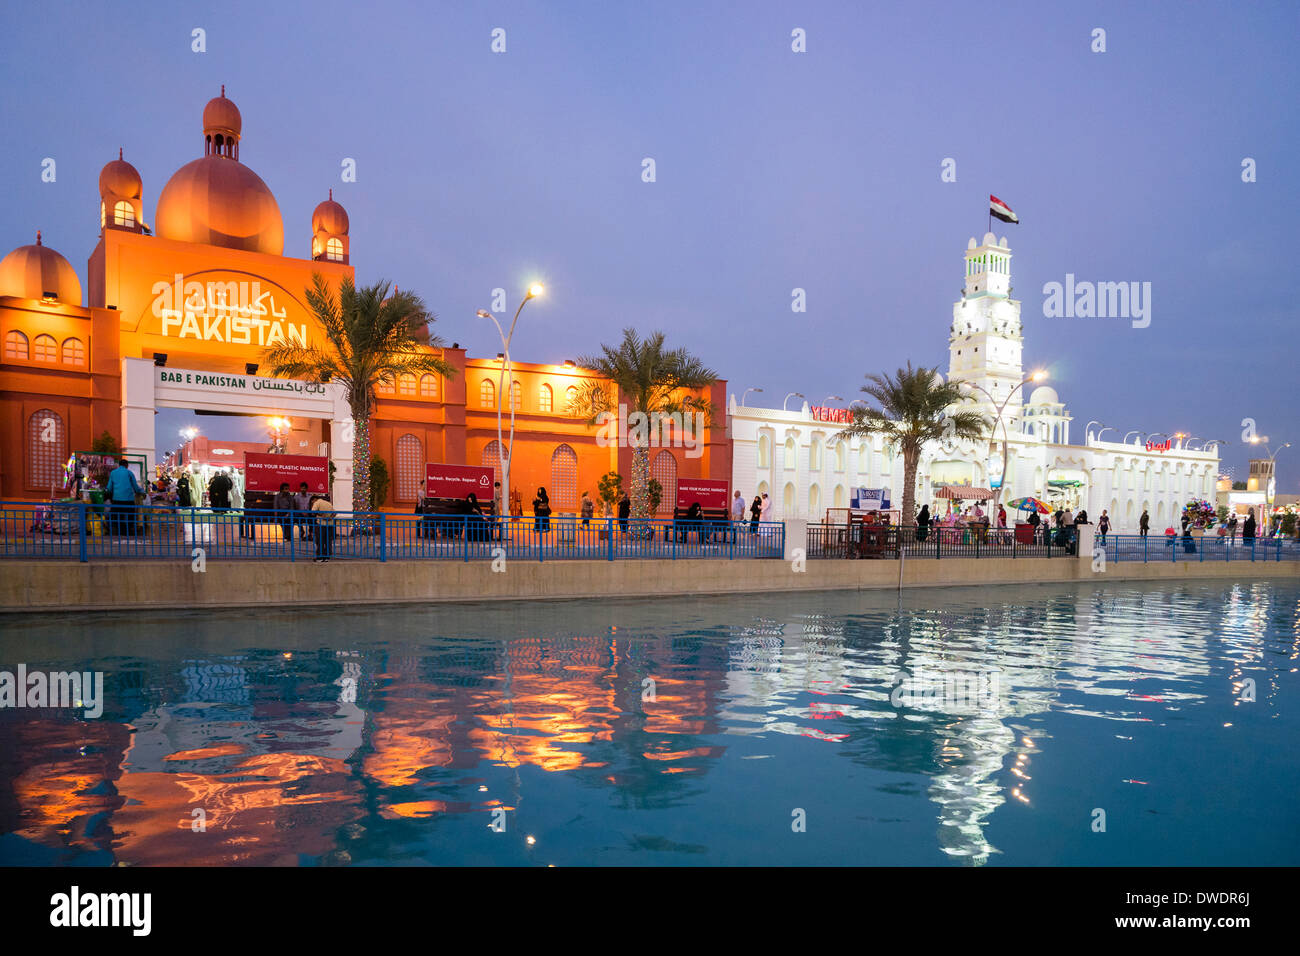 Pakistan and Yemen Pavilions at Global Village tourist cultural attraction in Dubai United Arab Emirates - Stock Image